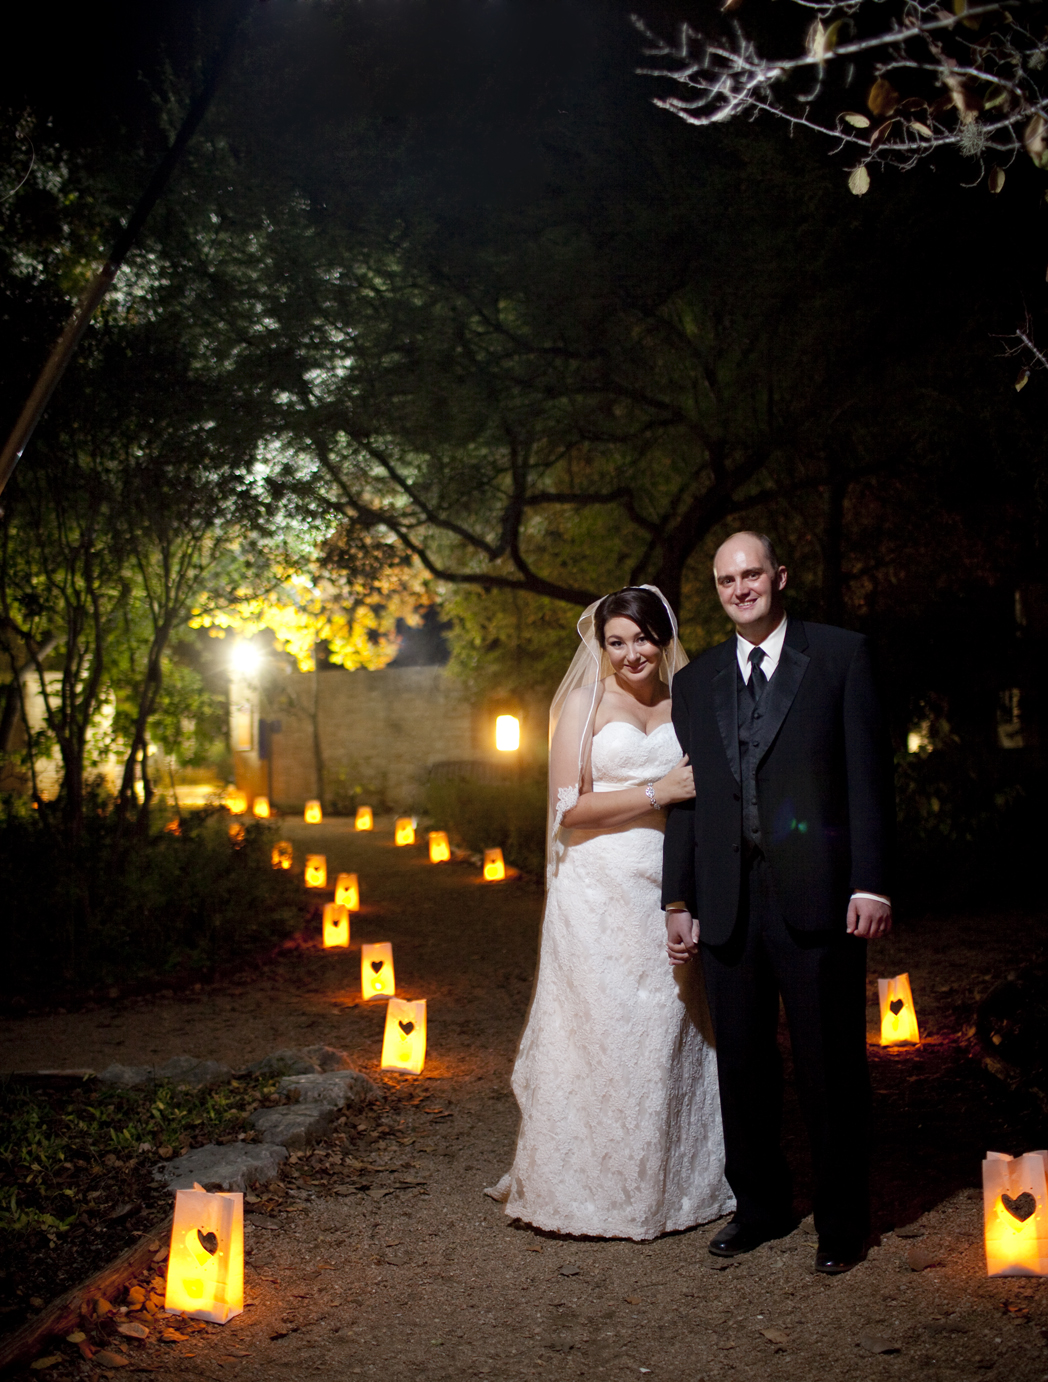 low light wedding photography, Austin wedding photographer, wedding dress, unbridaled, lady bird johnson wildflower center, wedding dress, tuxedo, wedding weil, bride and groom